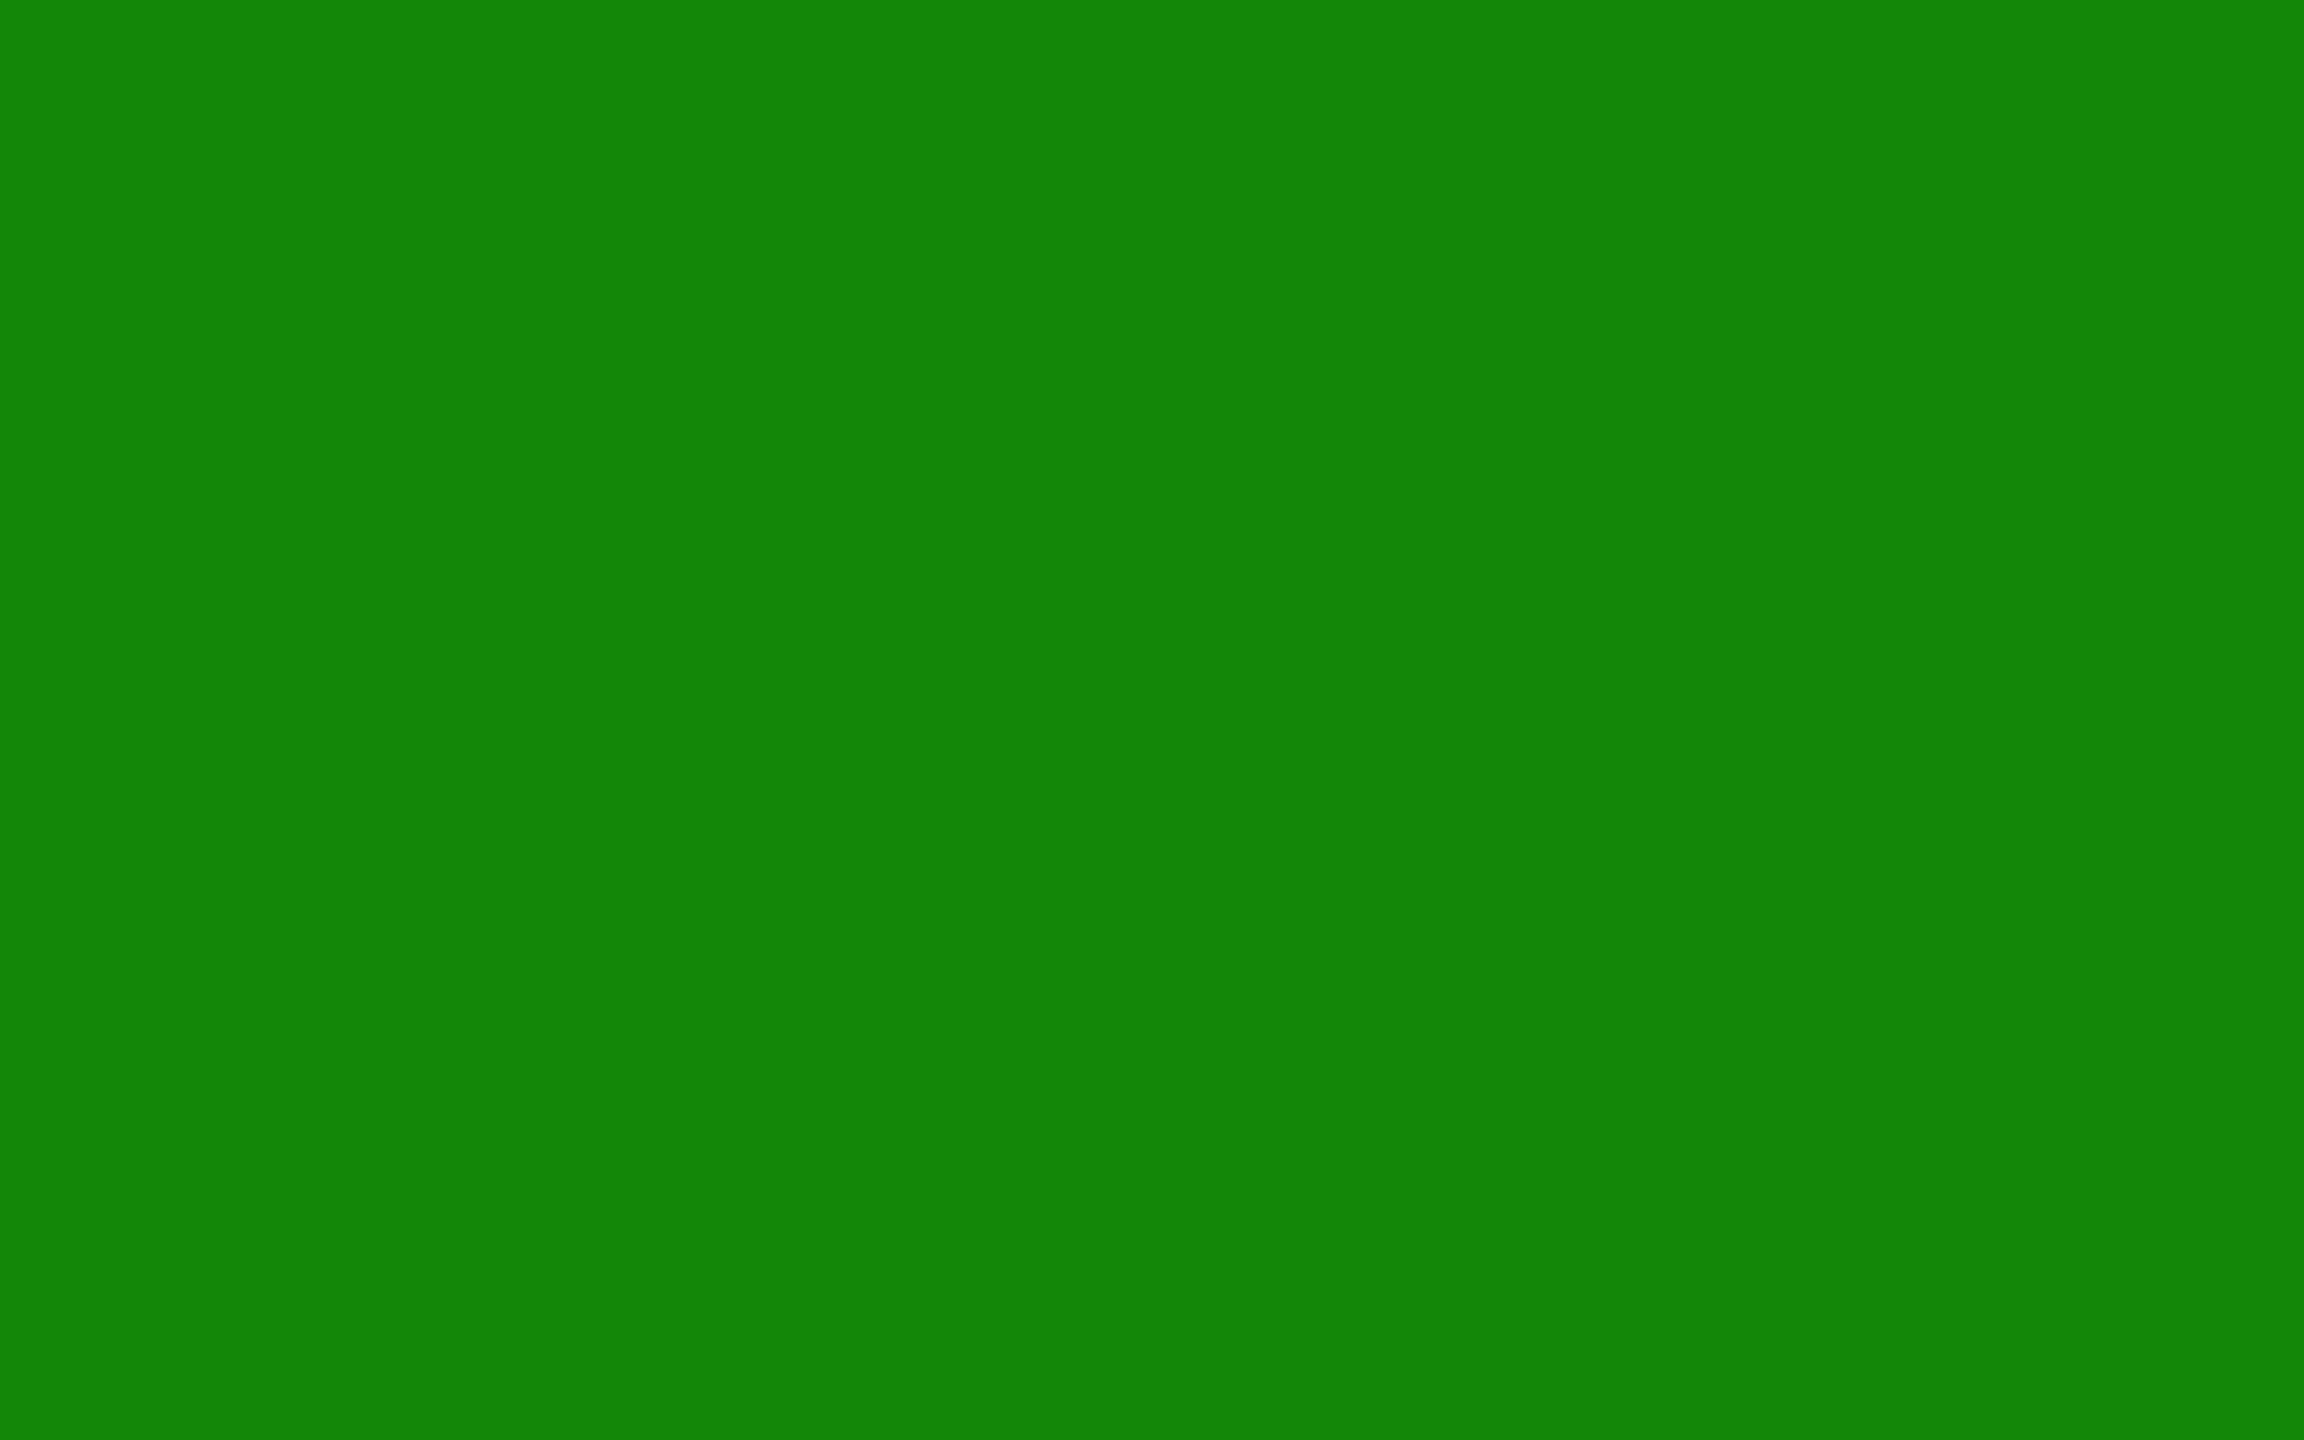 2304x1440 India Green Solid Color Background